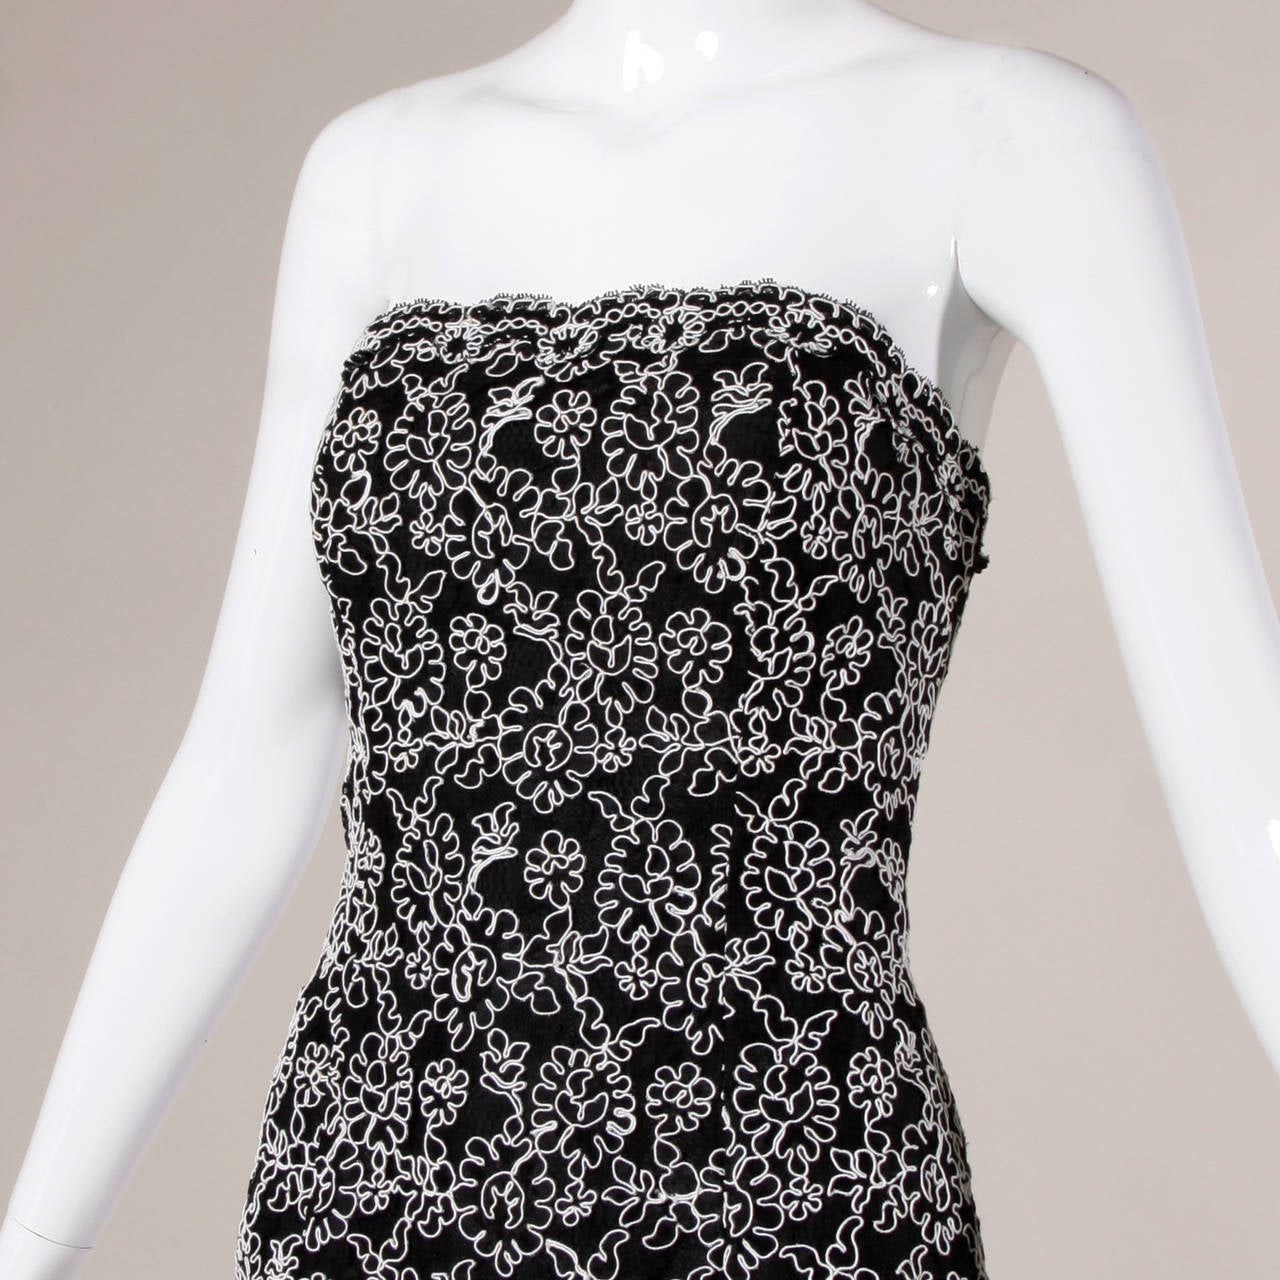 Vintage black lace cocktail dress with white tambour embroidery by Bill Blass.   Details:  Fully Lined Back Zip and Hook Closure Strapless Marked Size: 6 Estimated Size: S-M Color: Black/ White Fabric: Polyester Shell/ Rayon Lining Label: